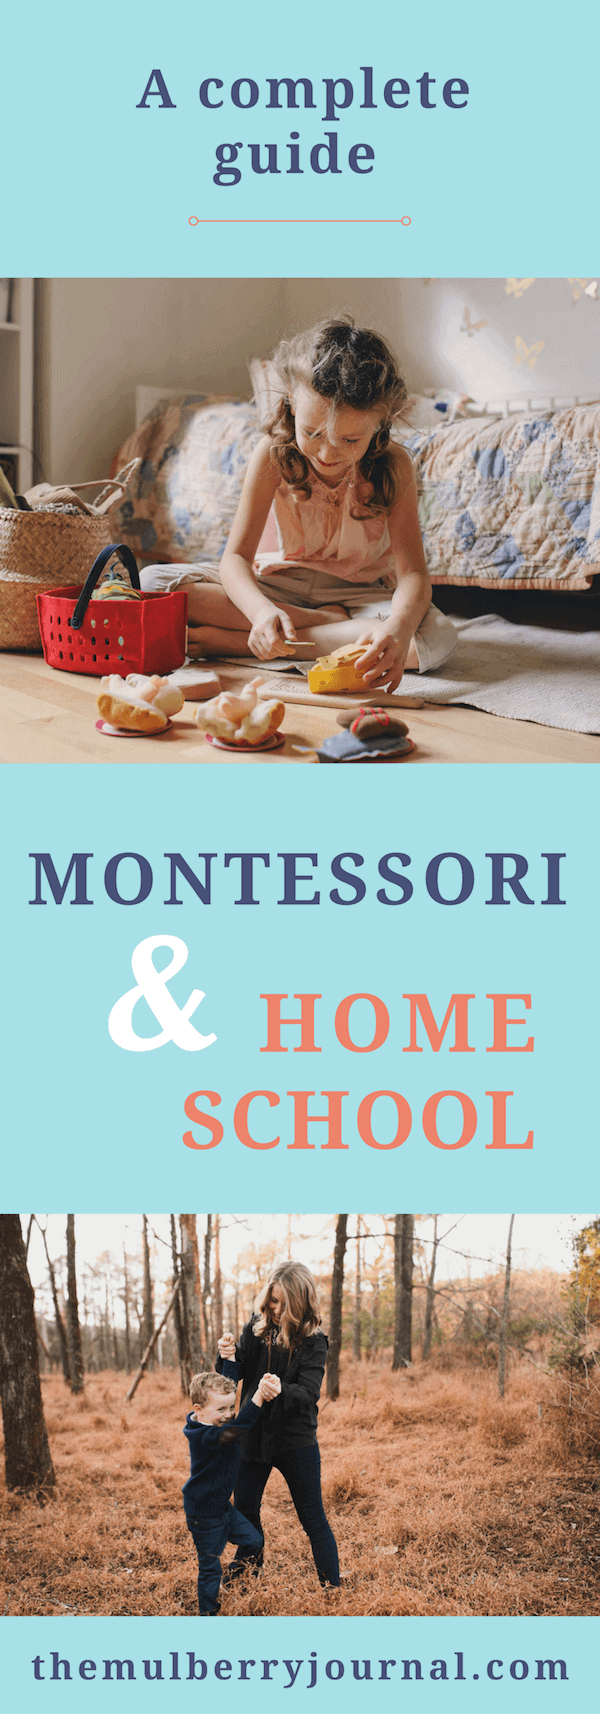 Montessori approach in a homeschool setting: where to start